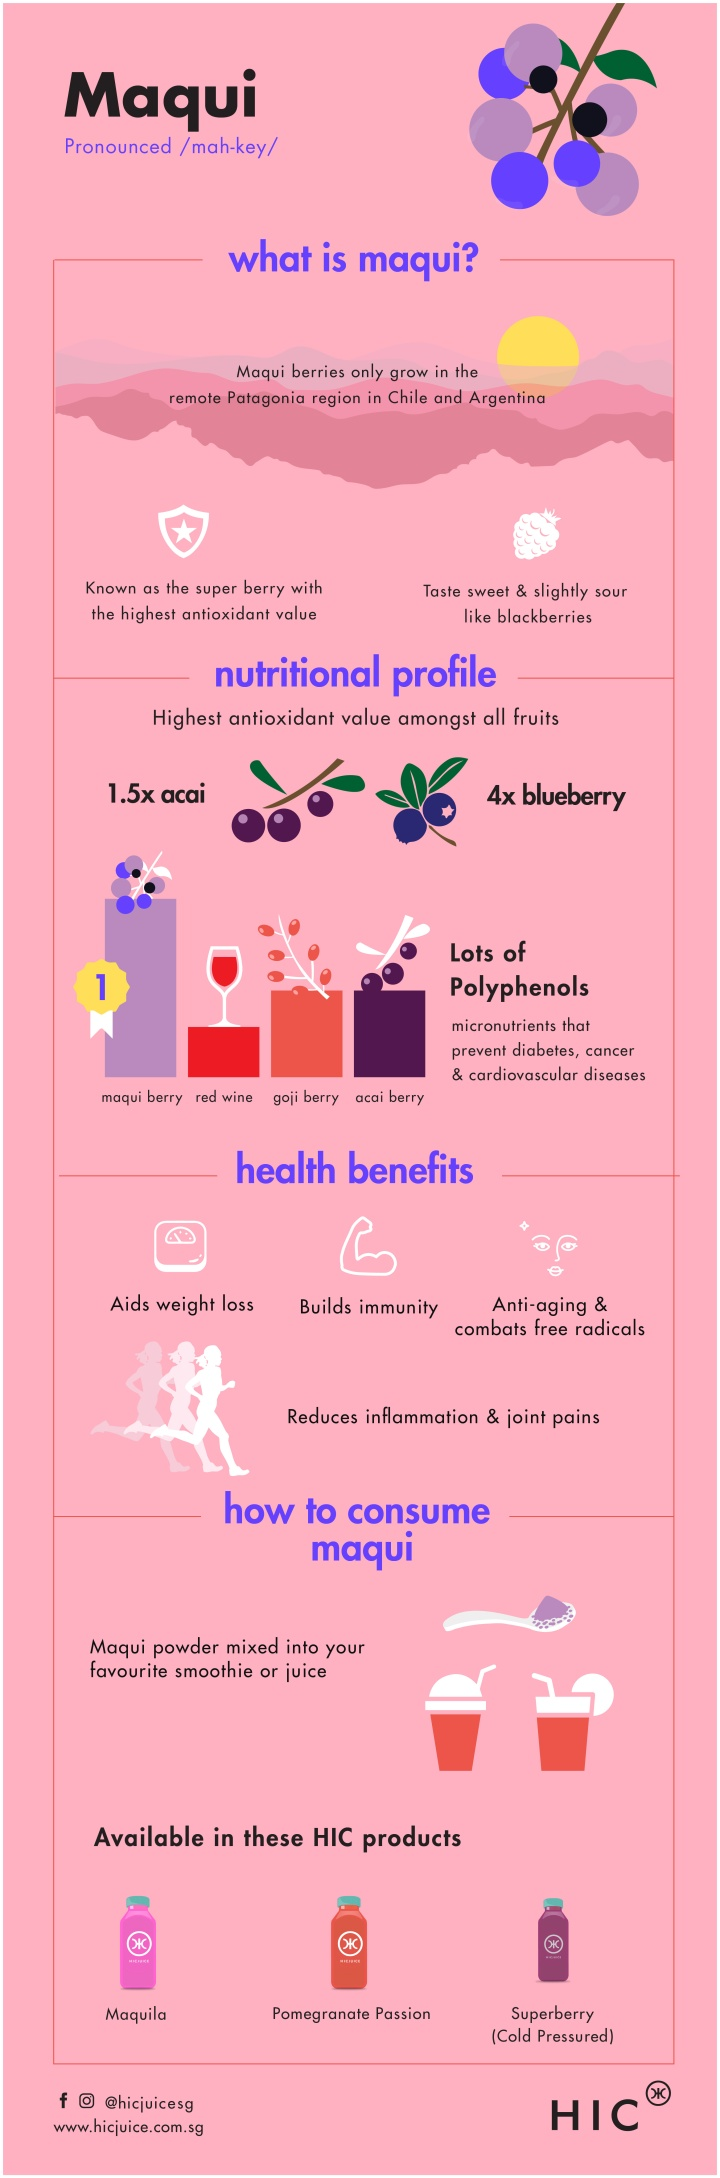 Maqui berry health benefits infographic